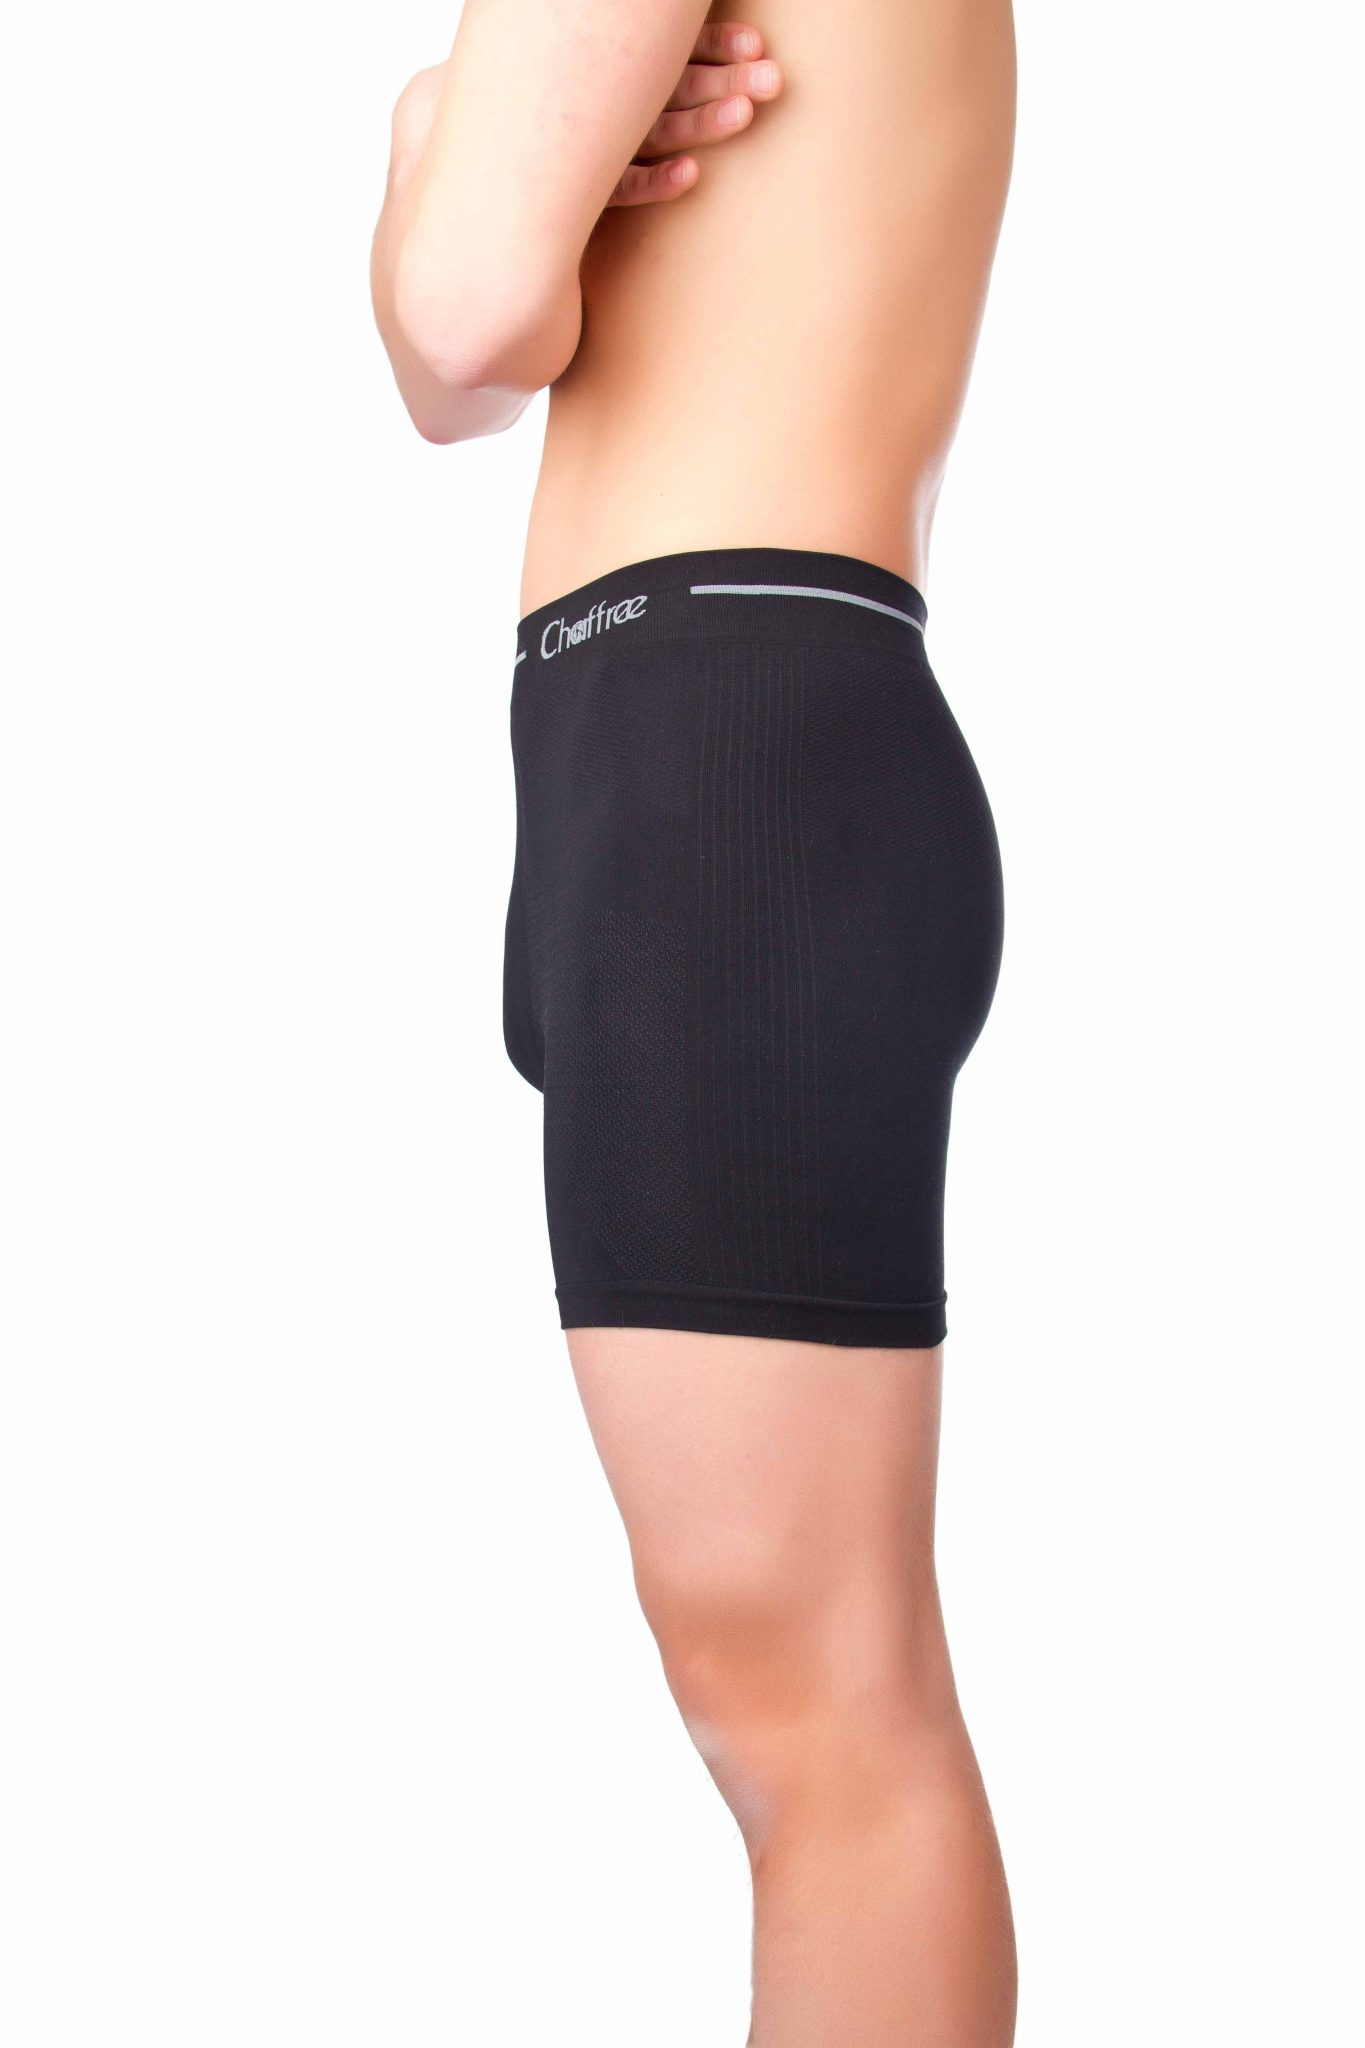 Find great deals on eBay for mens boxer shorts. Shop with confidence.